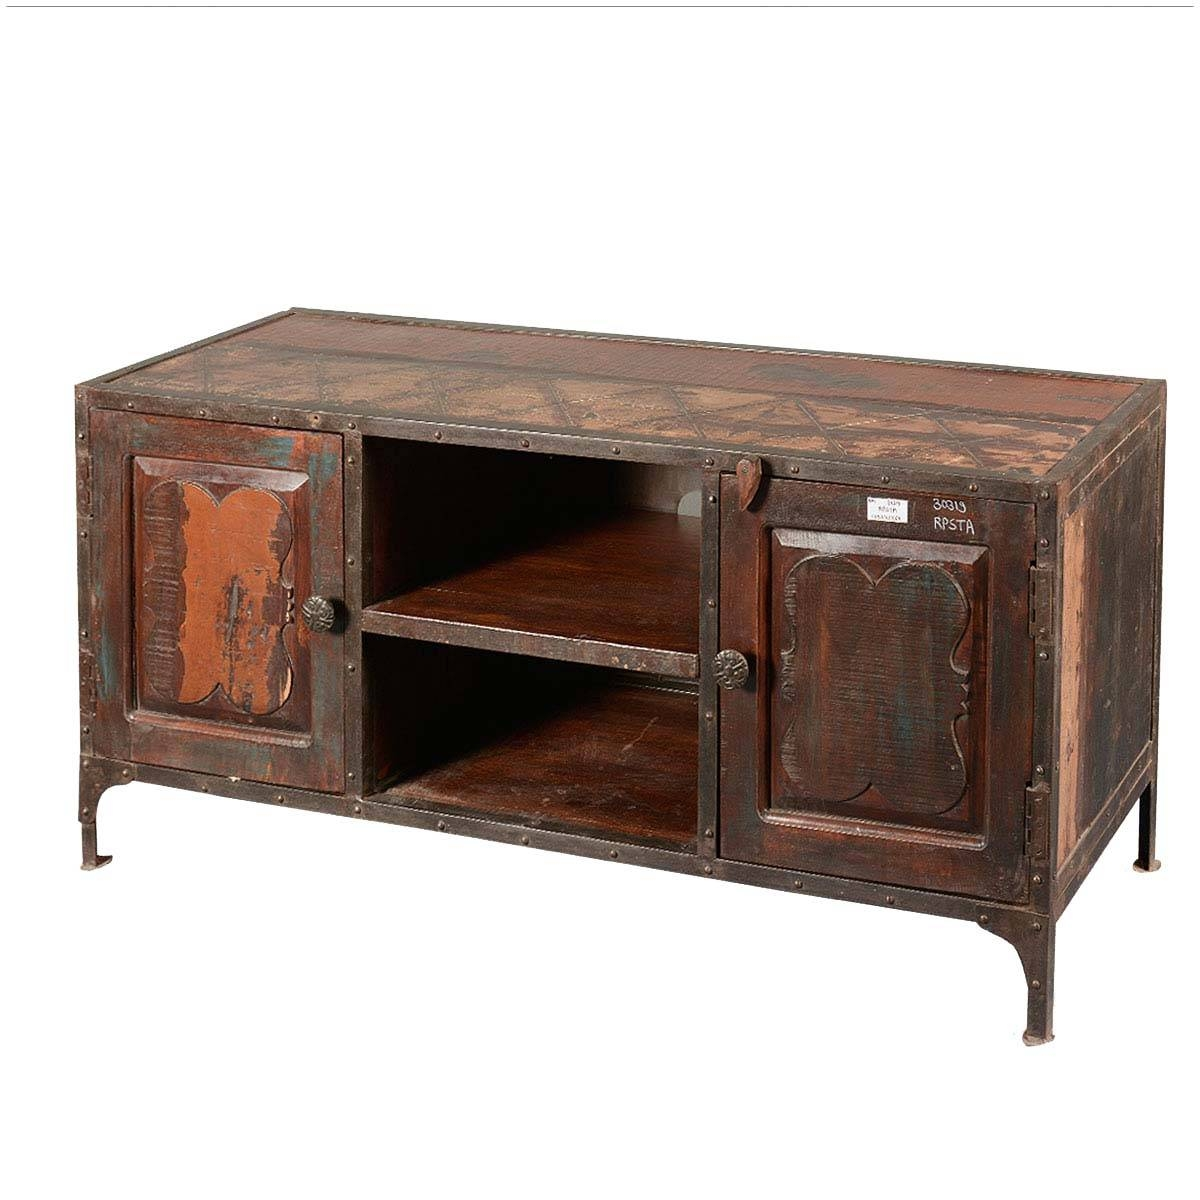 Wood Industrial Long Tv Stand Media Console inside Long Tv Stands Furniture (Image 14 of 15)